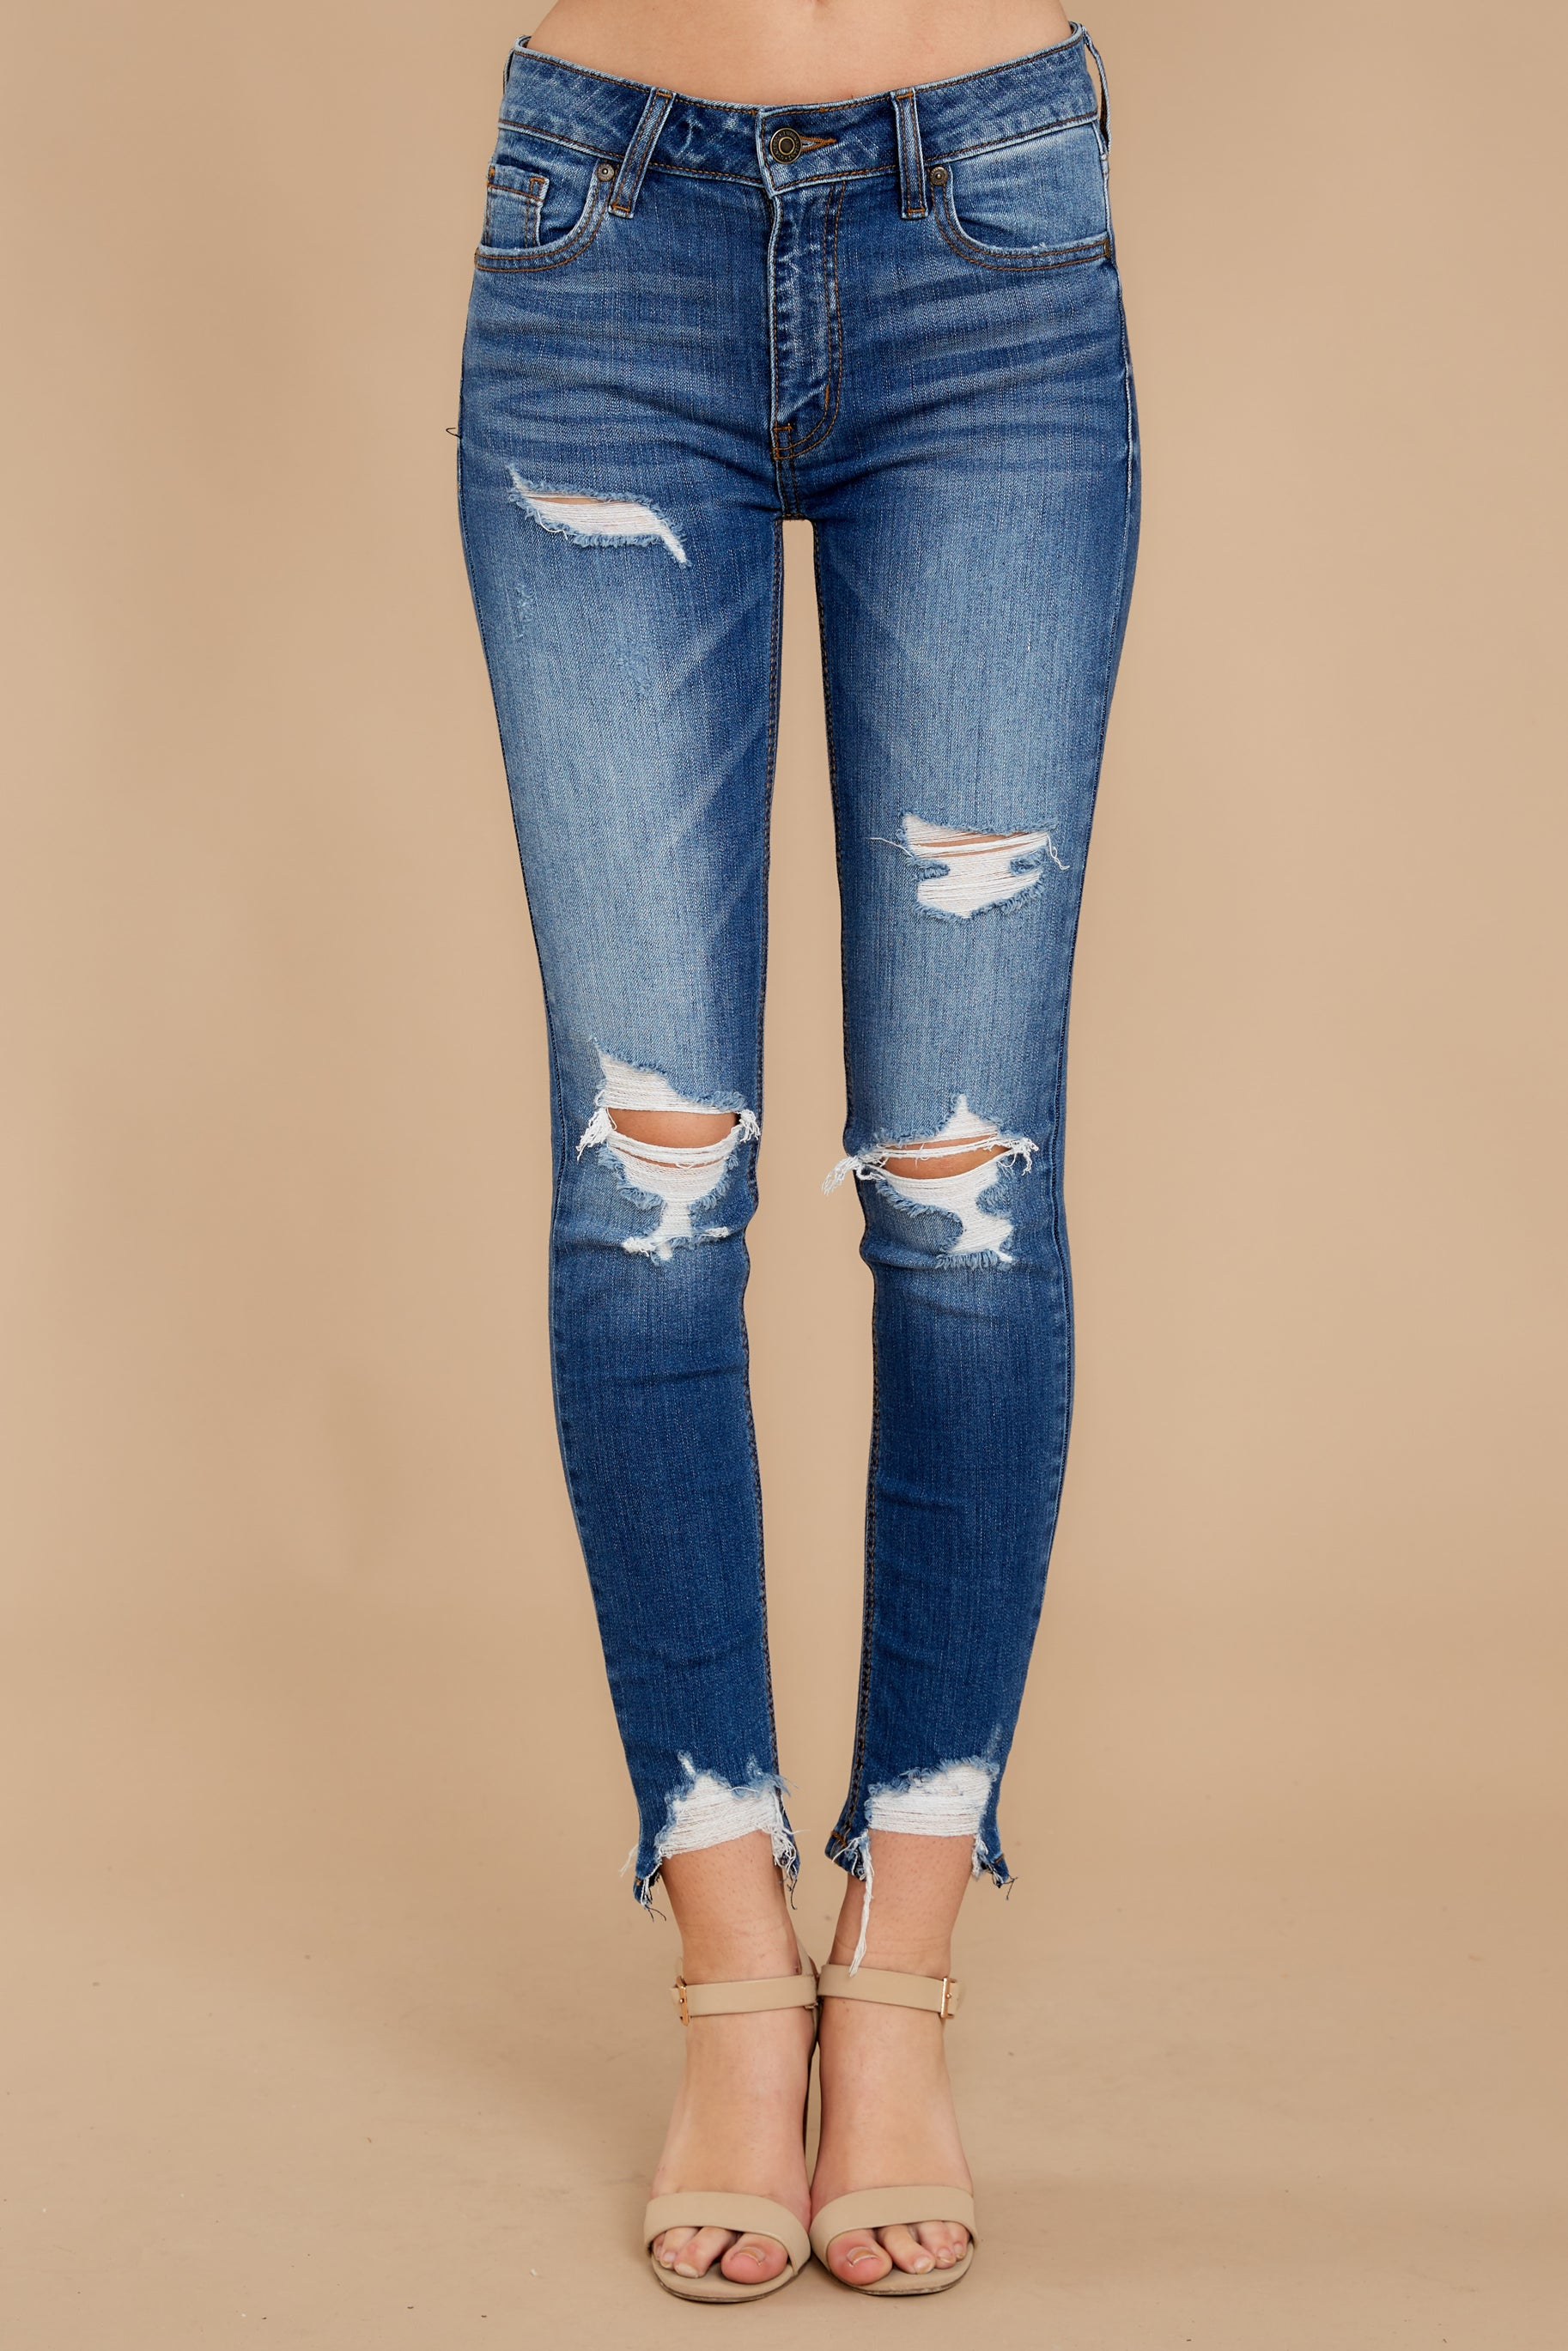 2 Not Going Back Medium Wash Distressed Skinny Jeans at reddress.com